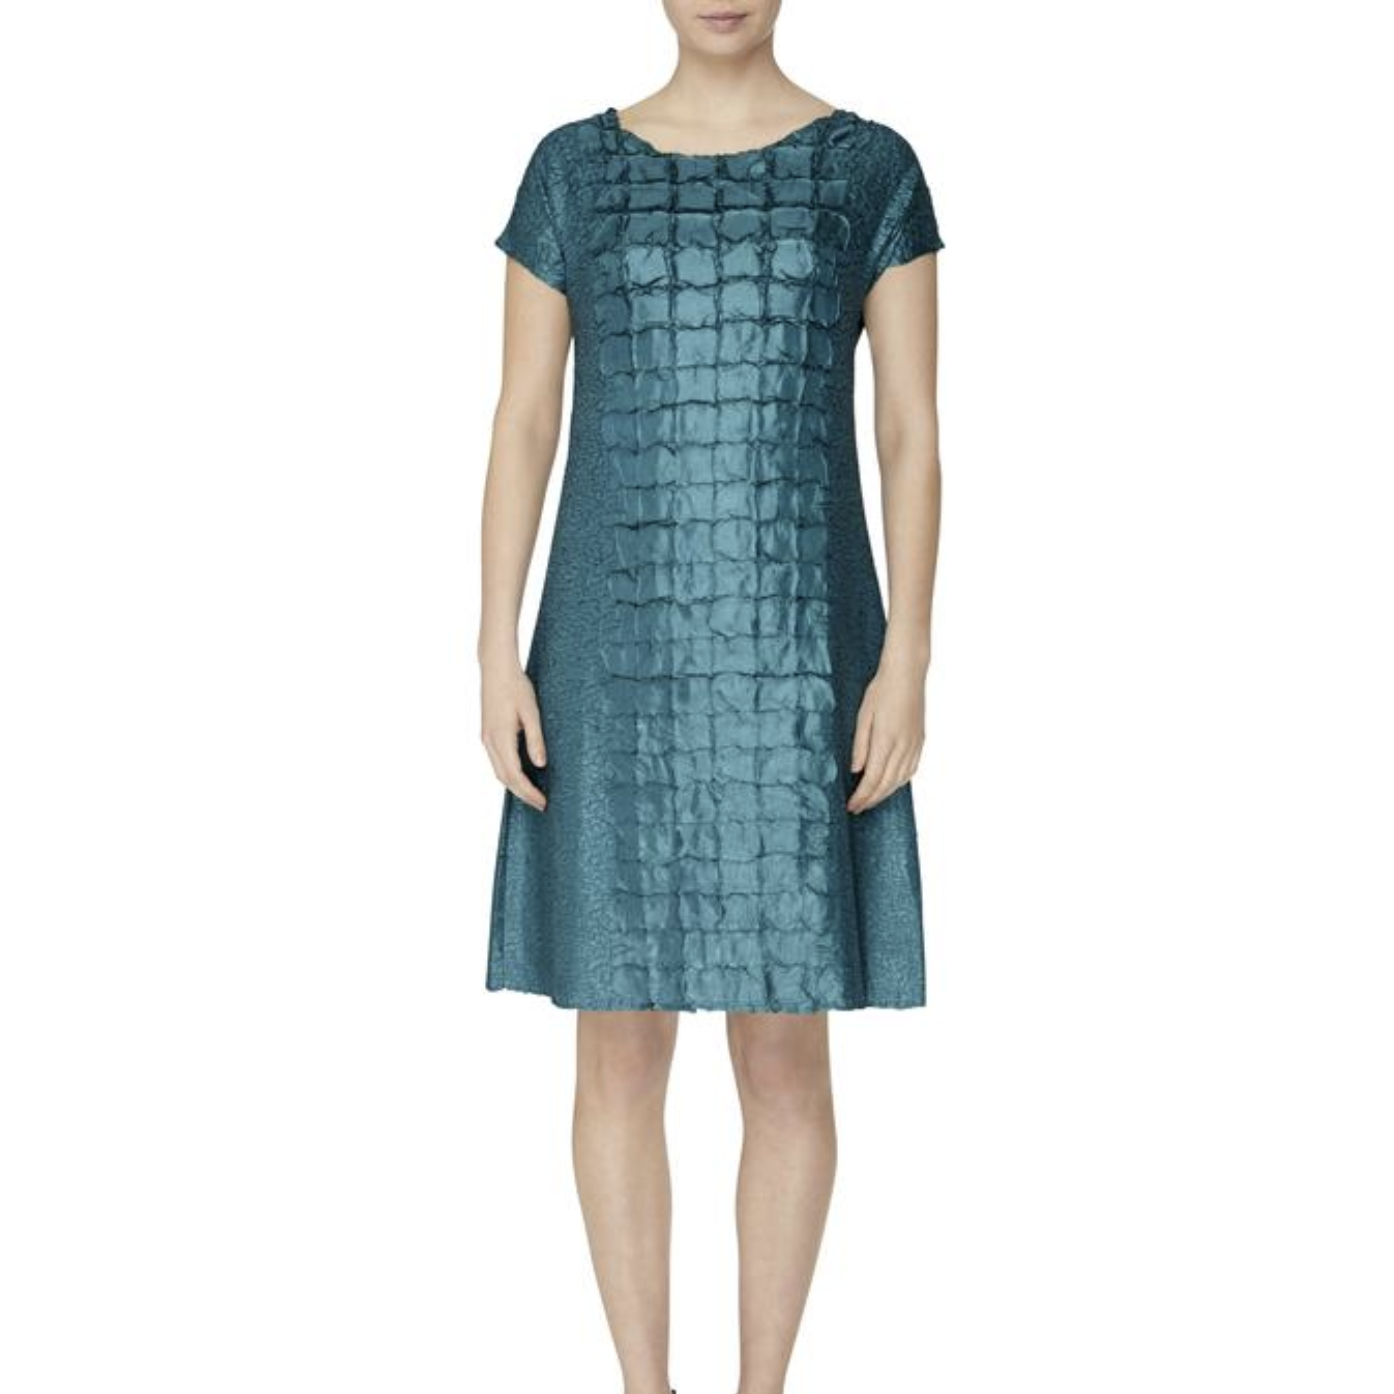 Alquema Reef Dress in Blue Green